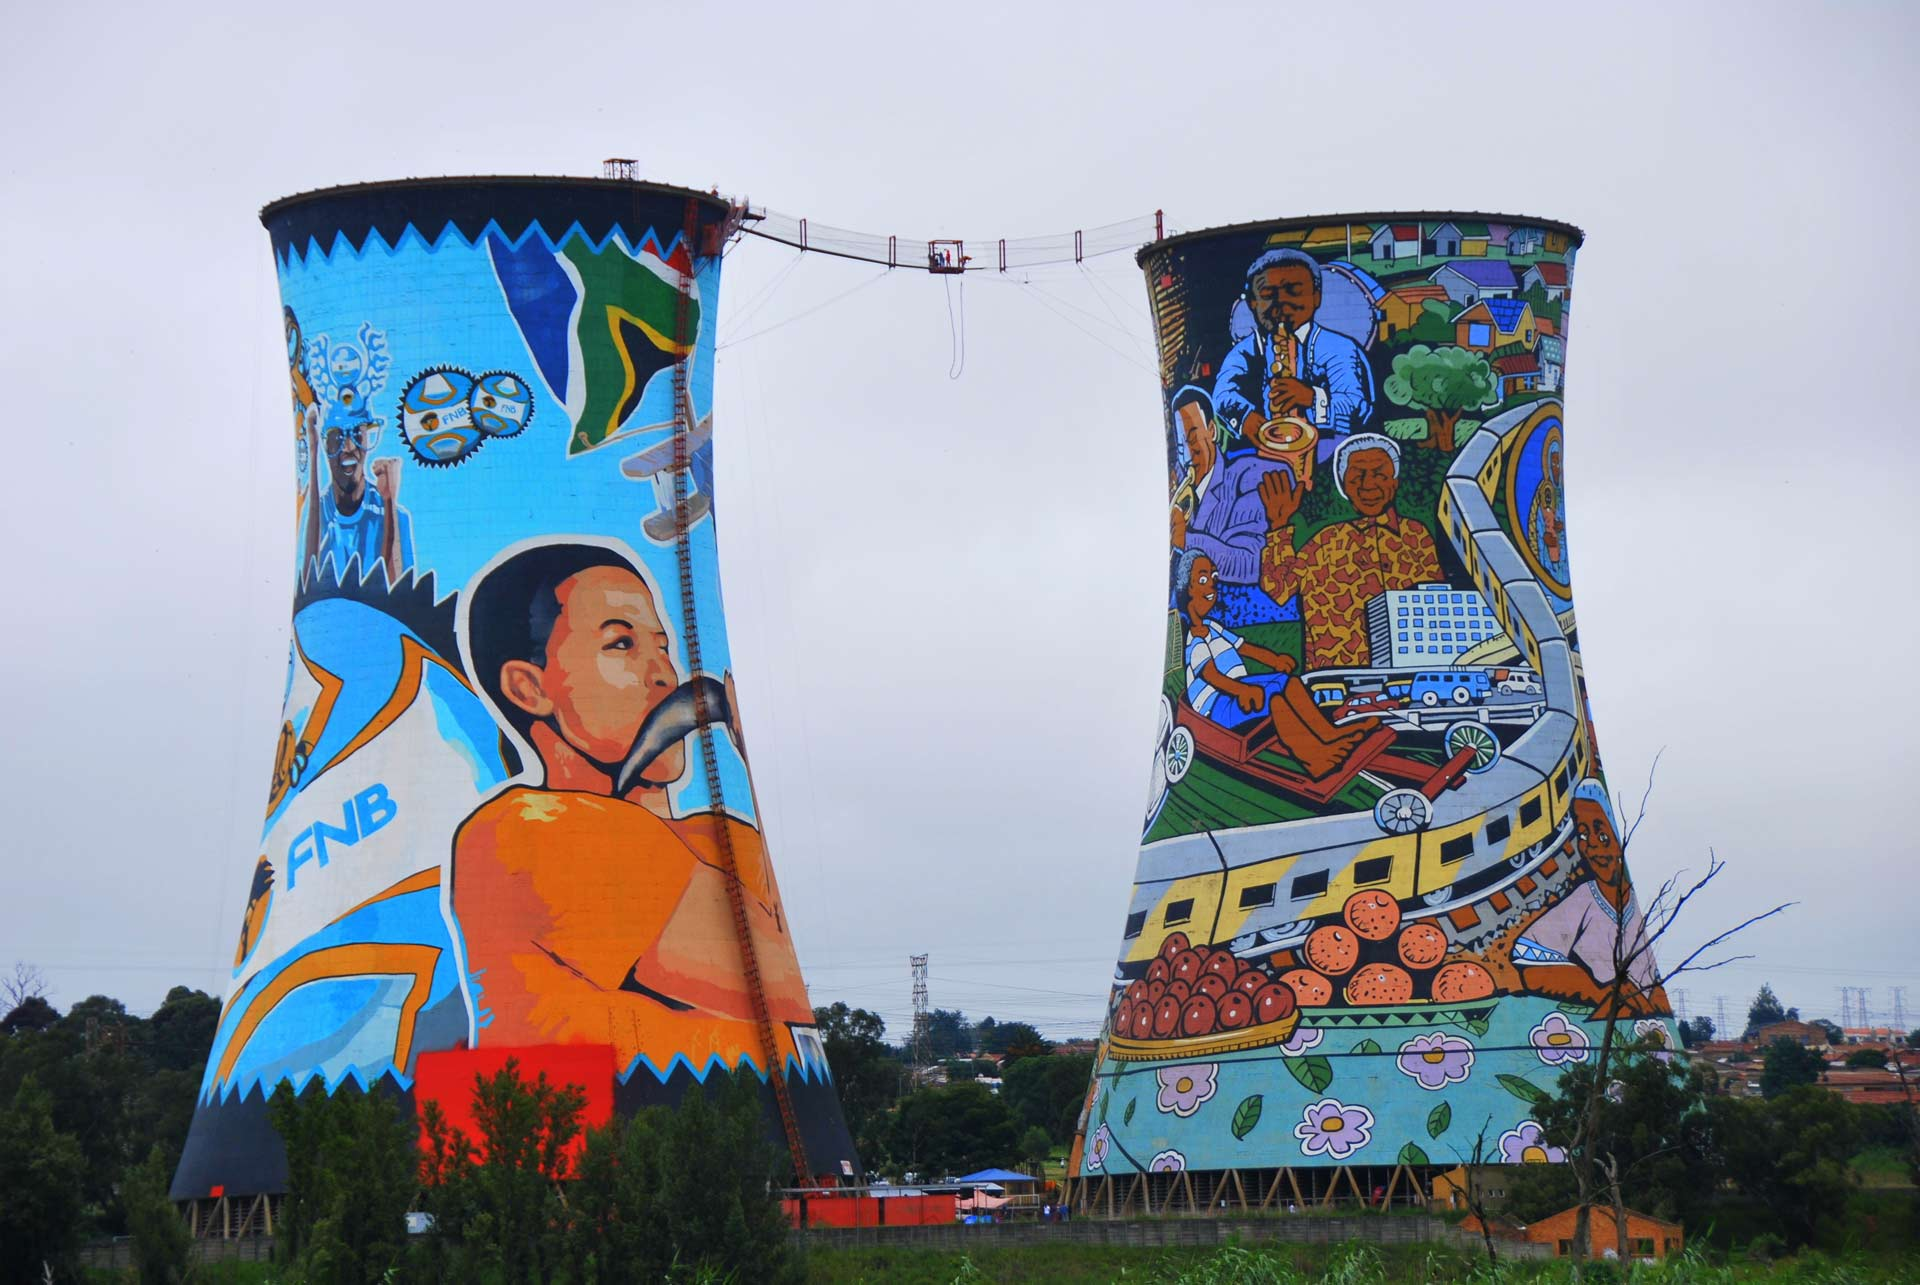 Orlando towers are a famous landmark of Soweto, the township of Johannesburg